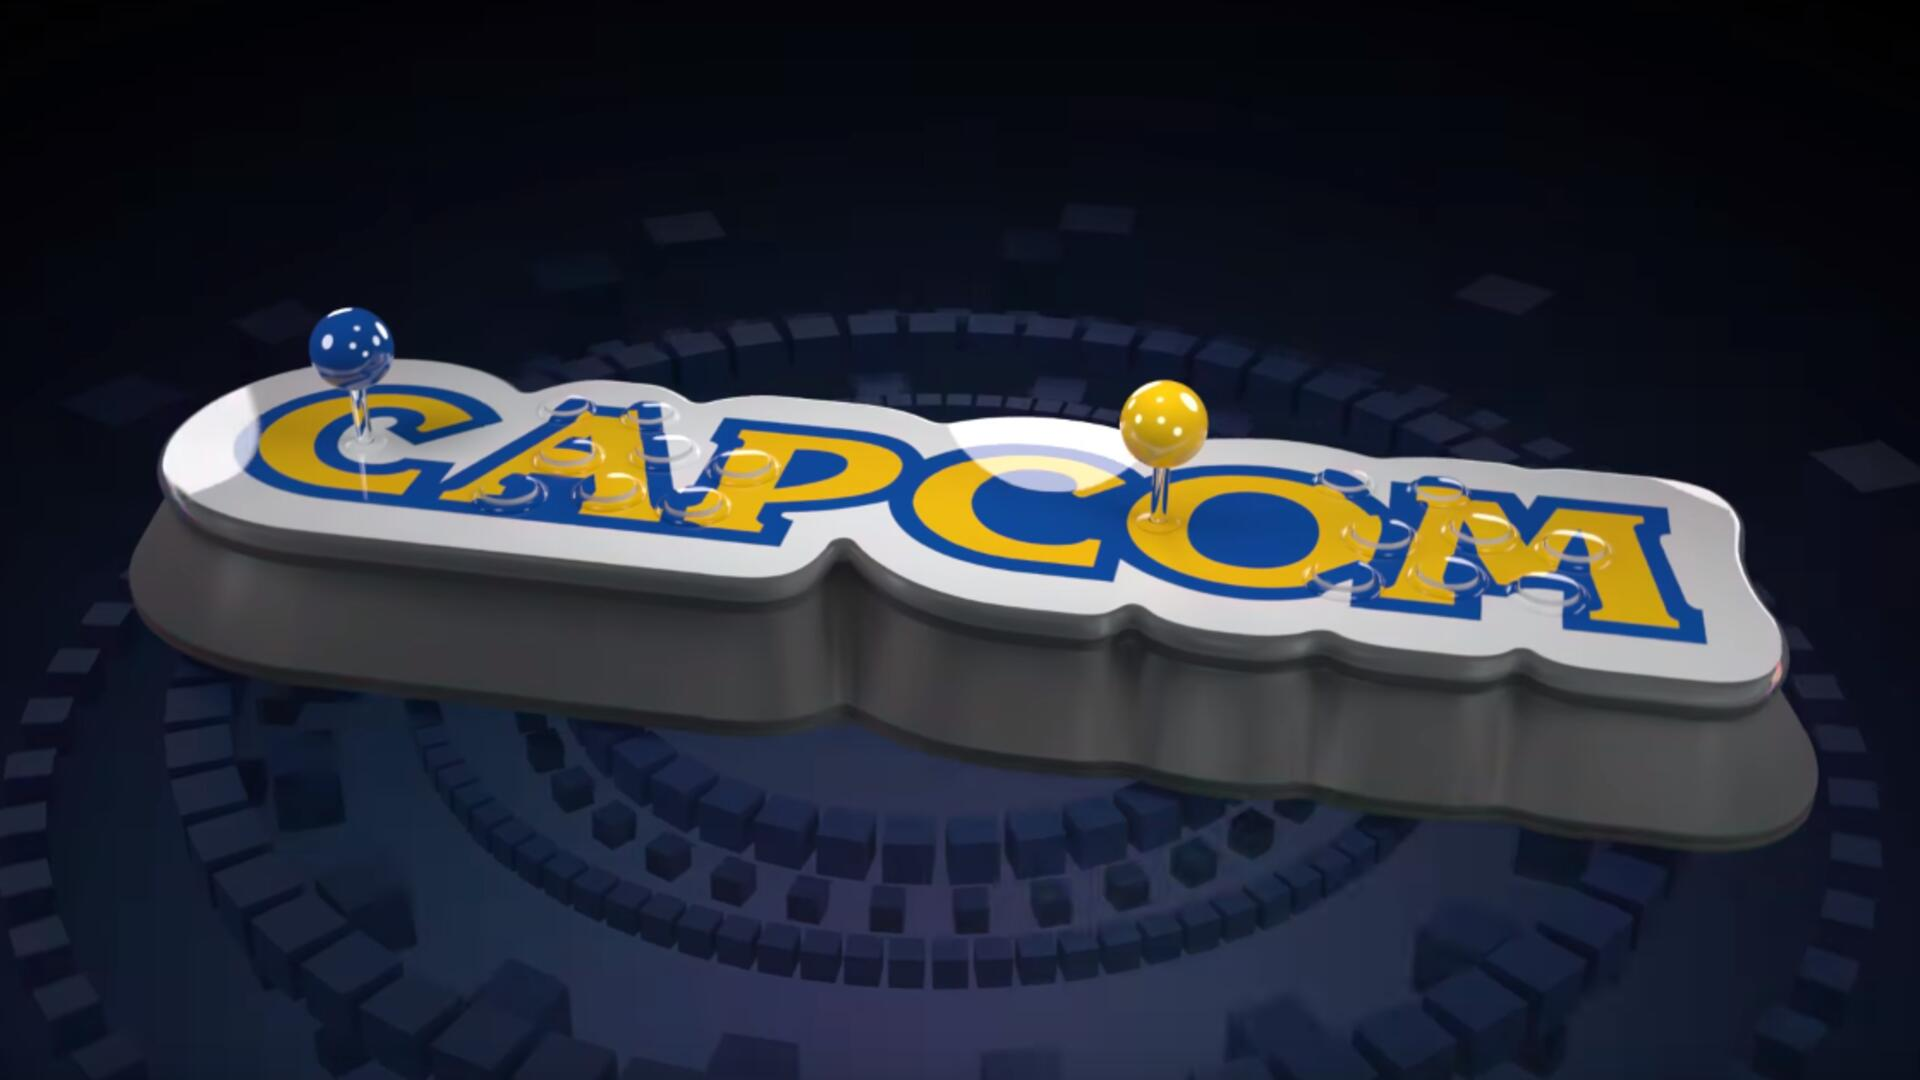 Capcom Home Arcade is an Outrageously Priced Plug-and-Play Retro Console